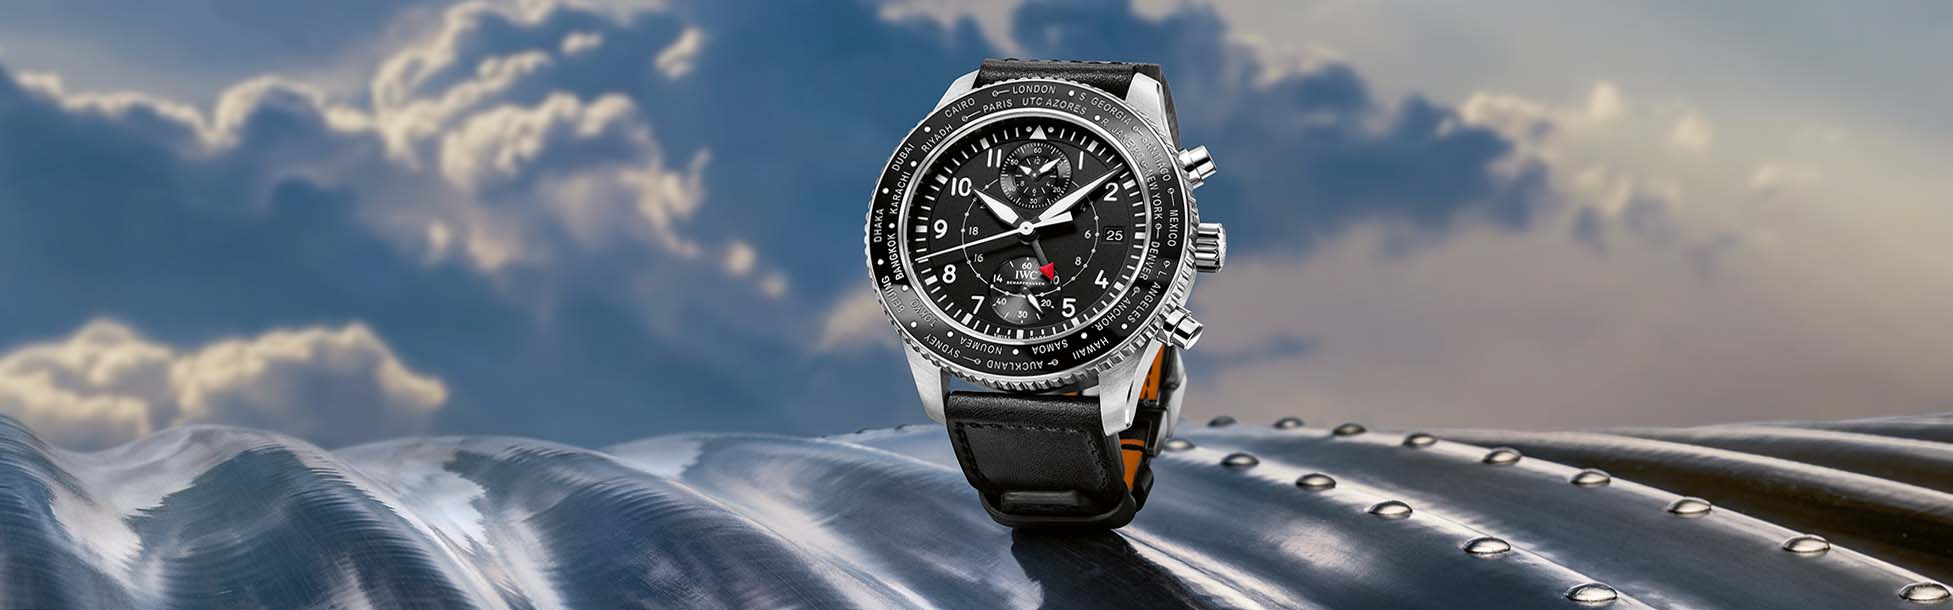 IWC Pilot's Watch Timezoner Chronograph in Stainless Steel